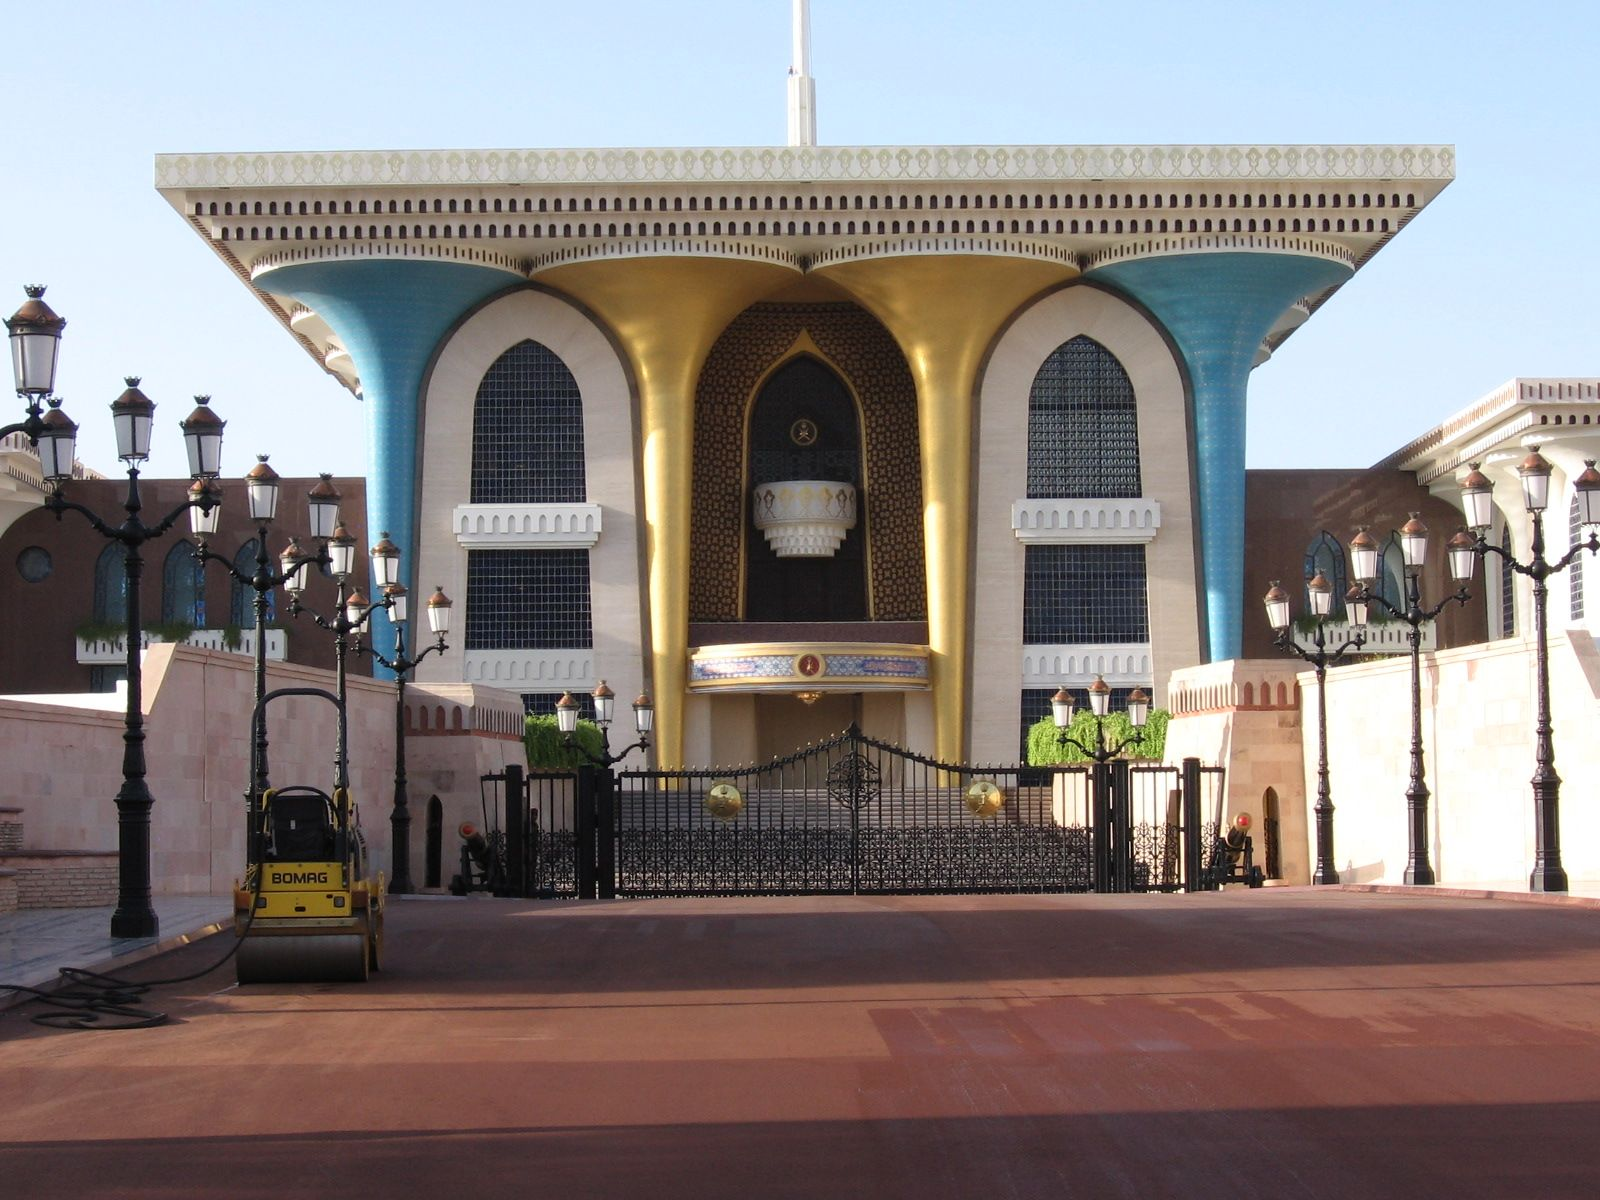 Entrance to the palace of the Sultan of Oman in Muscat